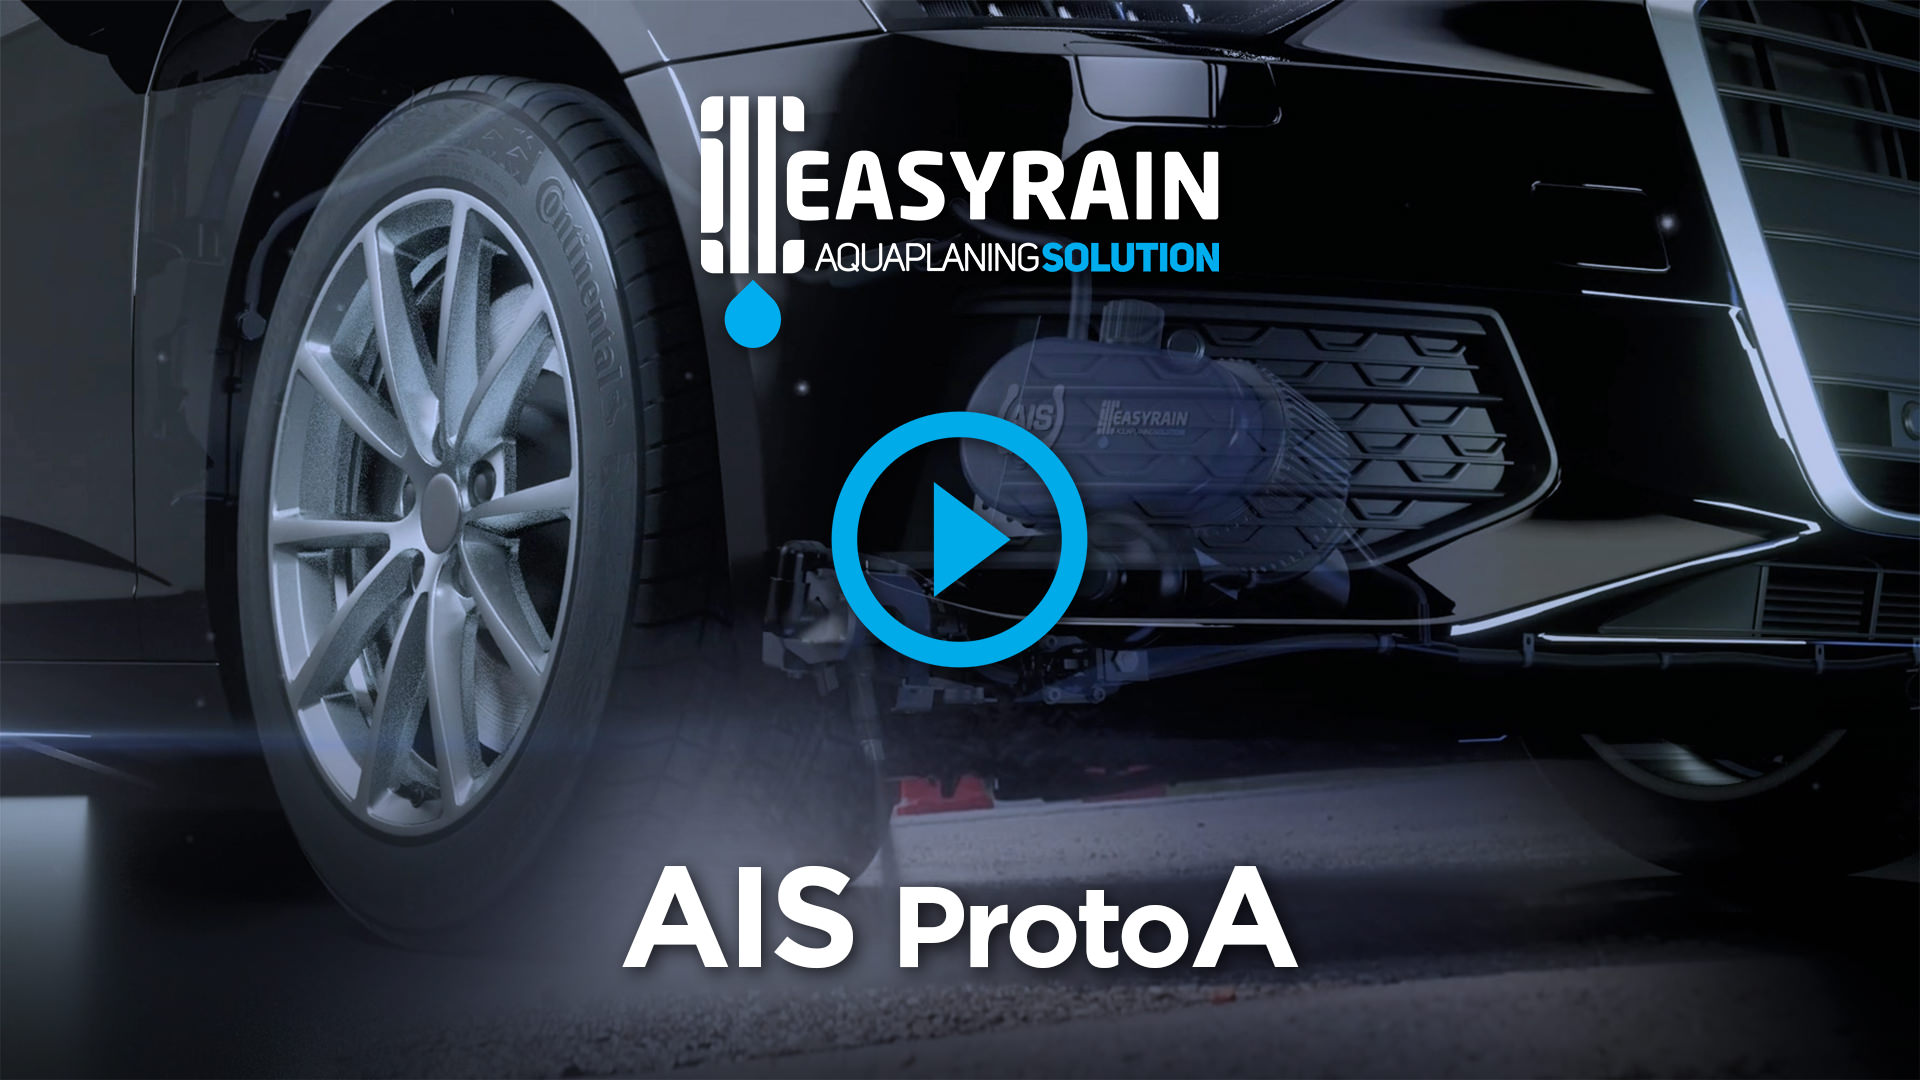 Easyrain AIS Proto A - Aquaplaning Intelligent Solution